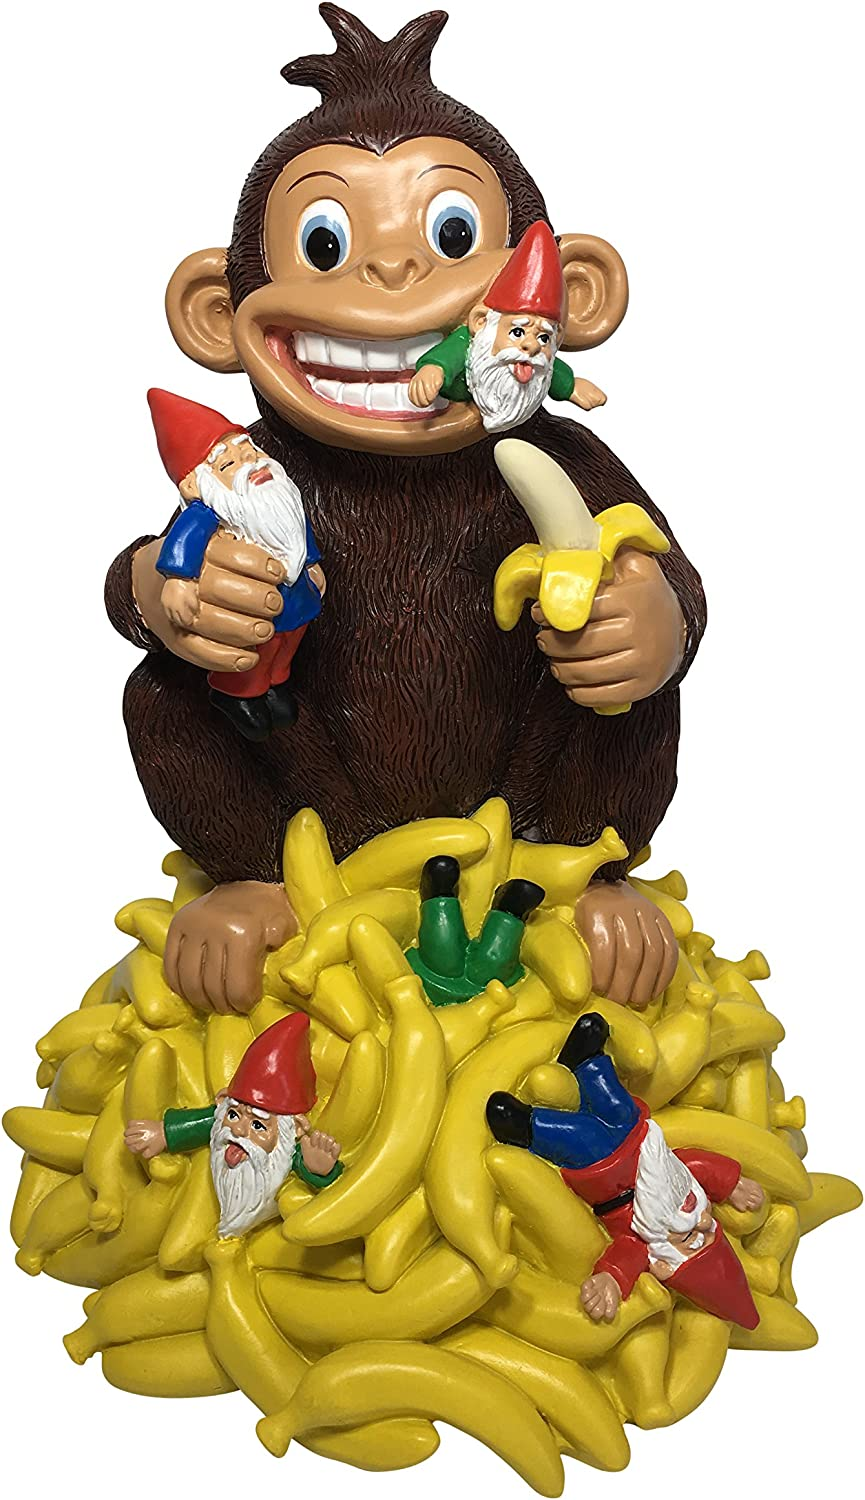 "Gnomes & Bananas: Miniature Monkey with Bananas and Gnomes - 11"" Tall Garden Gnome Figurine for The Miniature Garden by GlitZGlam"